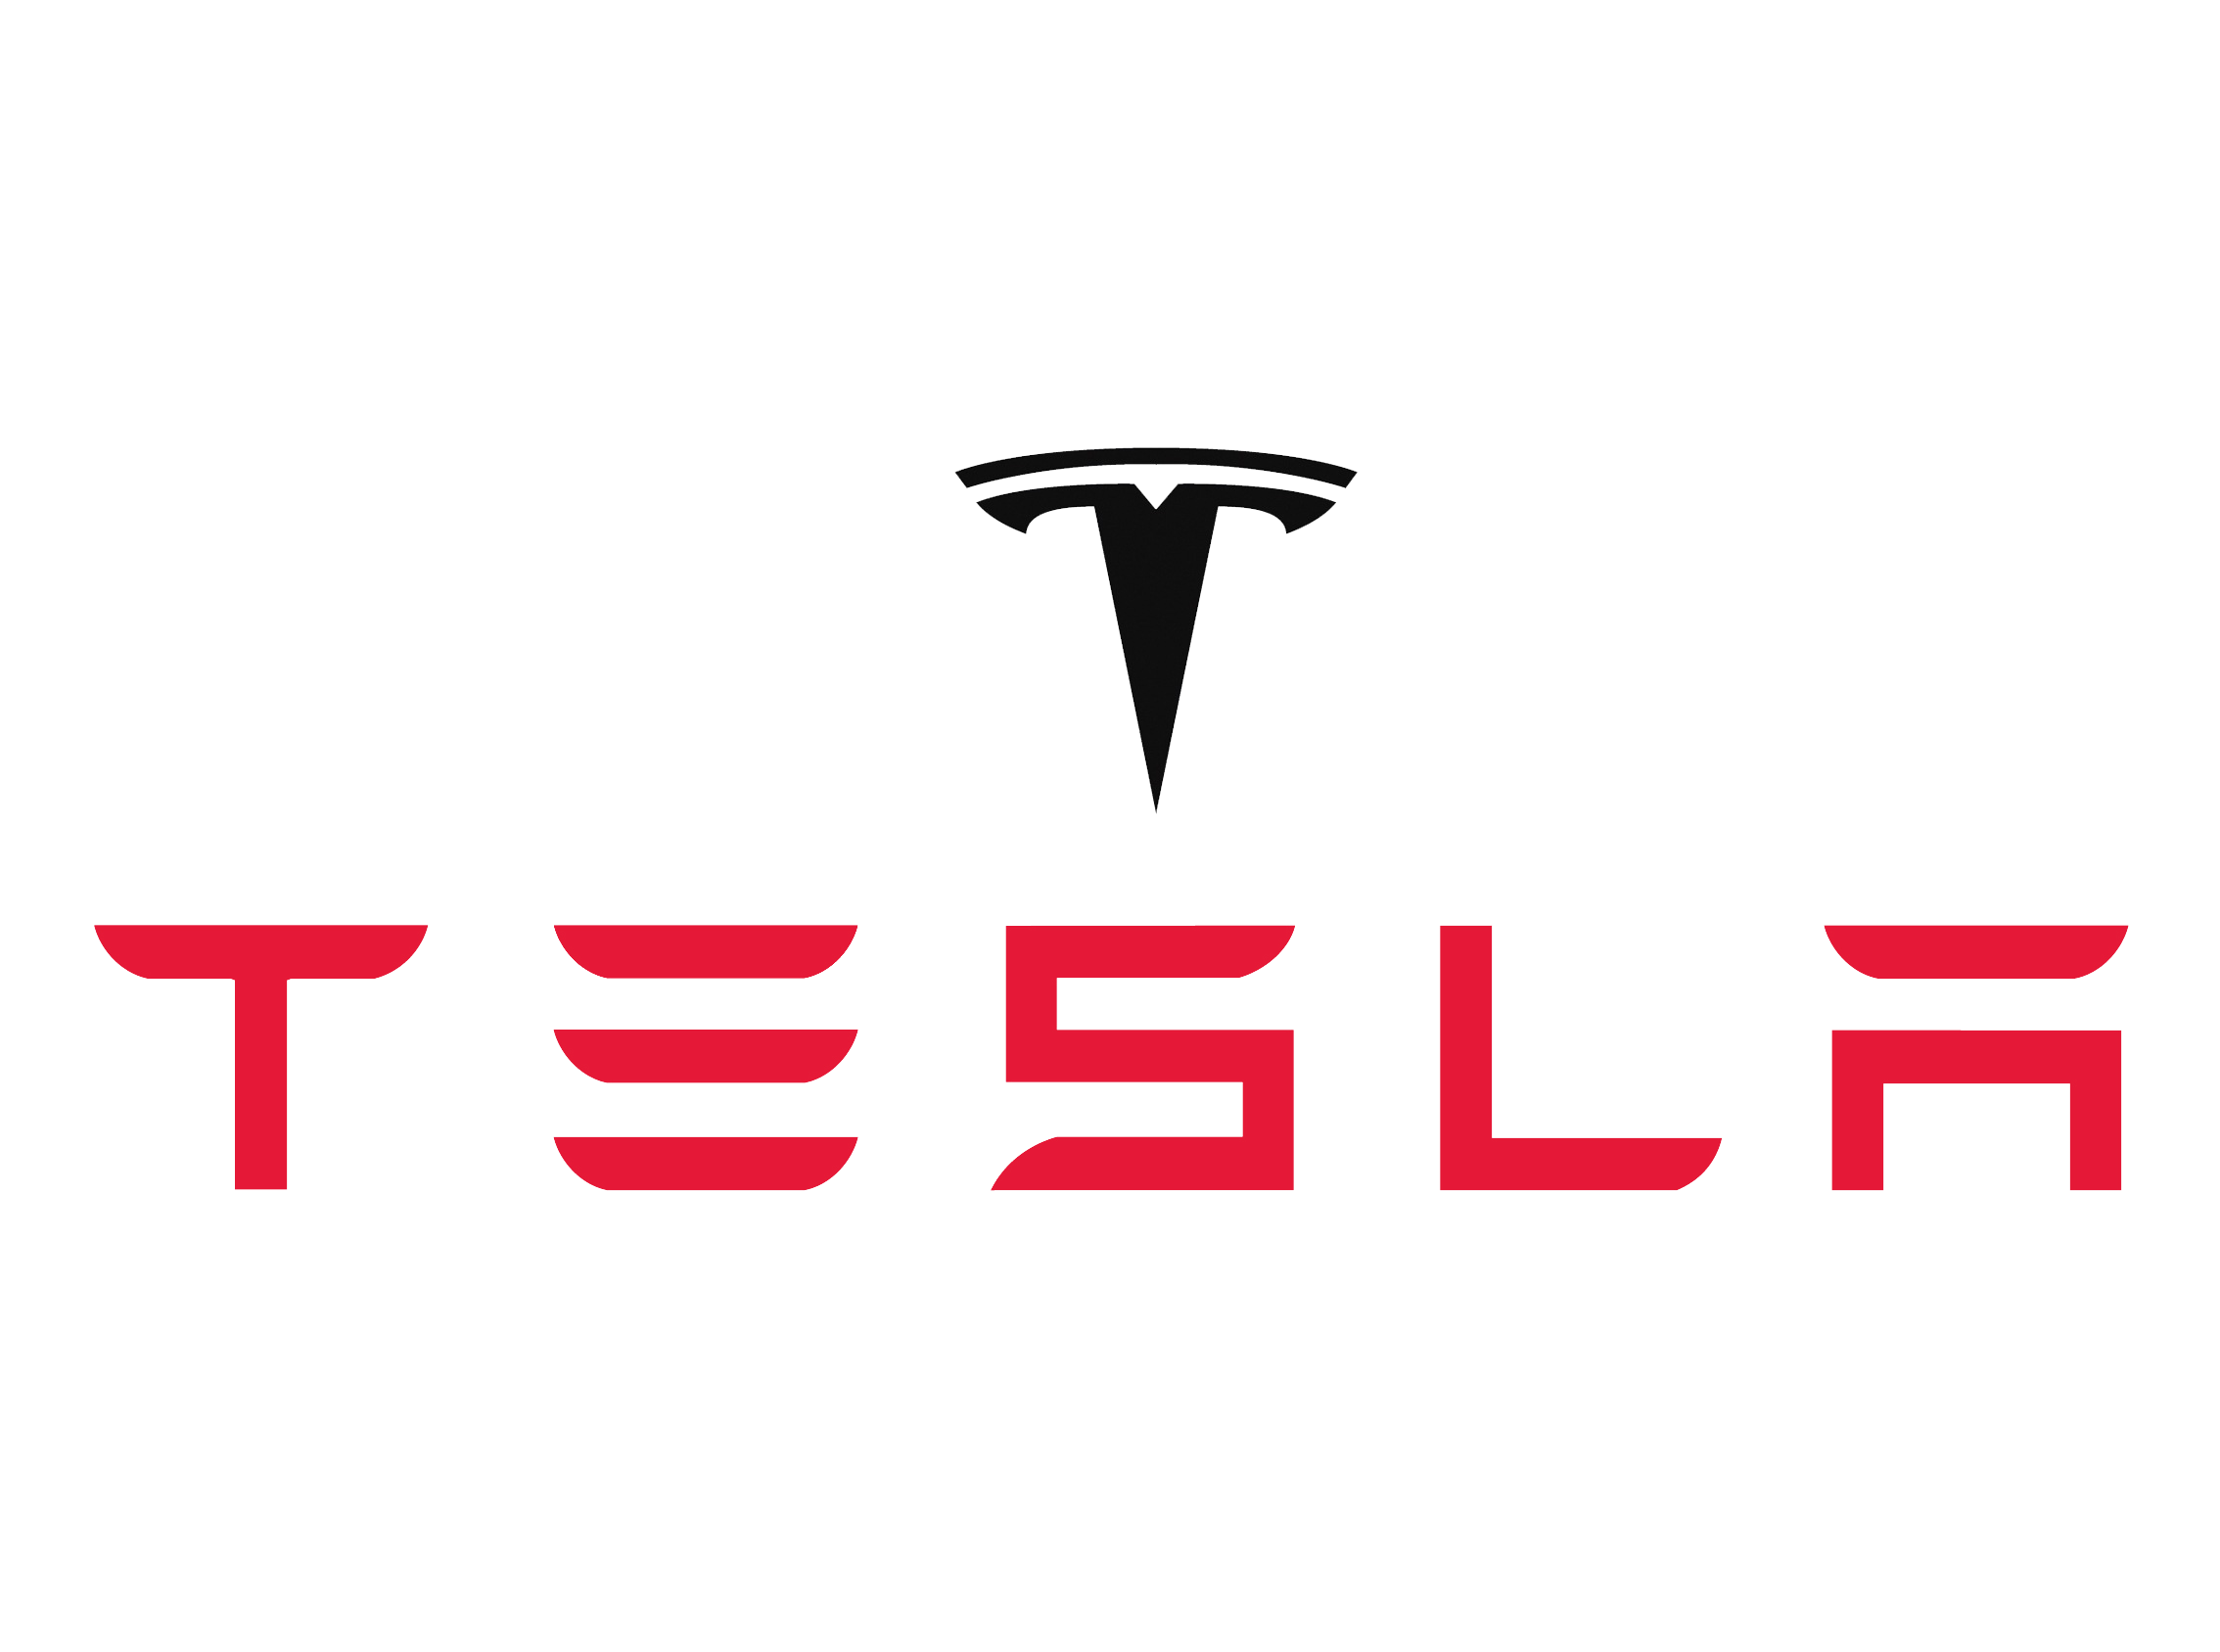 Tesla car logo png. Symbol meaning and history